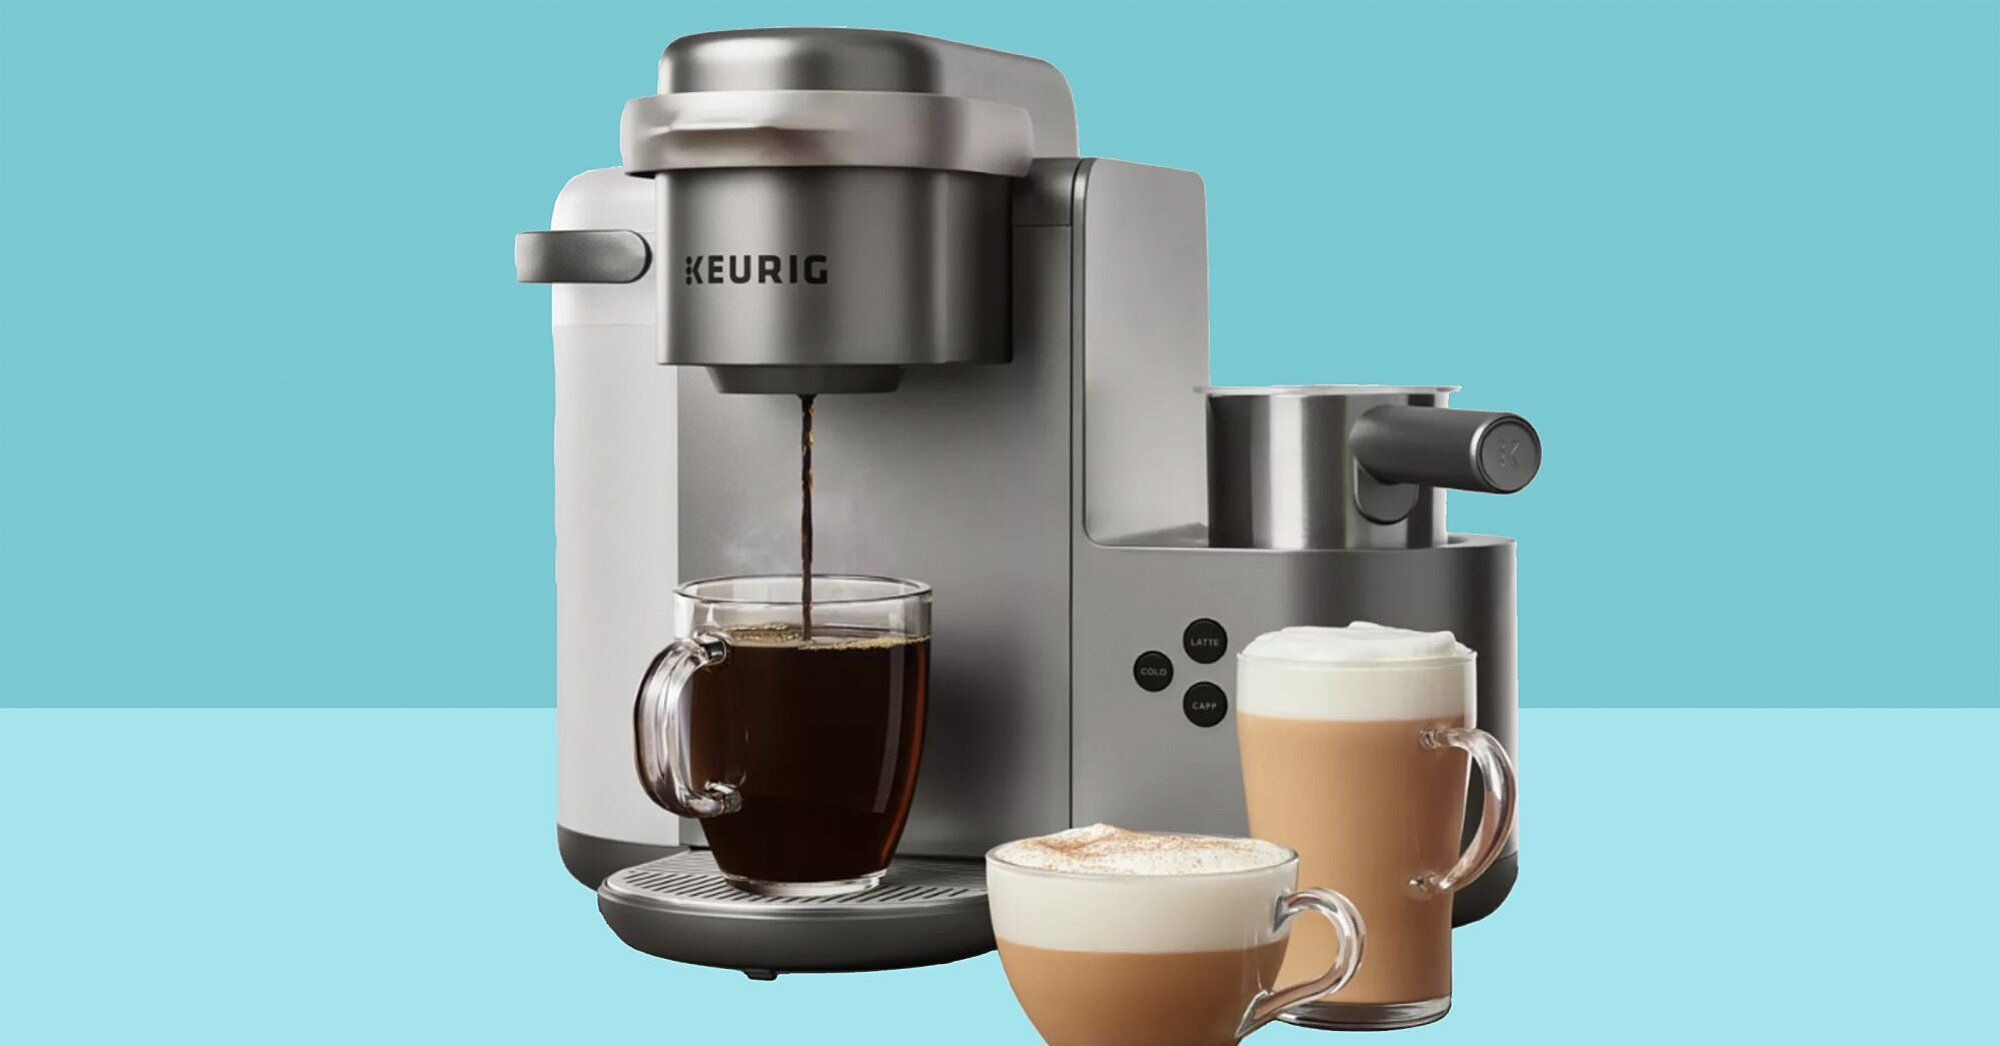 How to clean a keurig coffee maker the right way in 2020